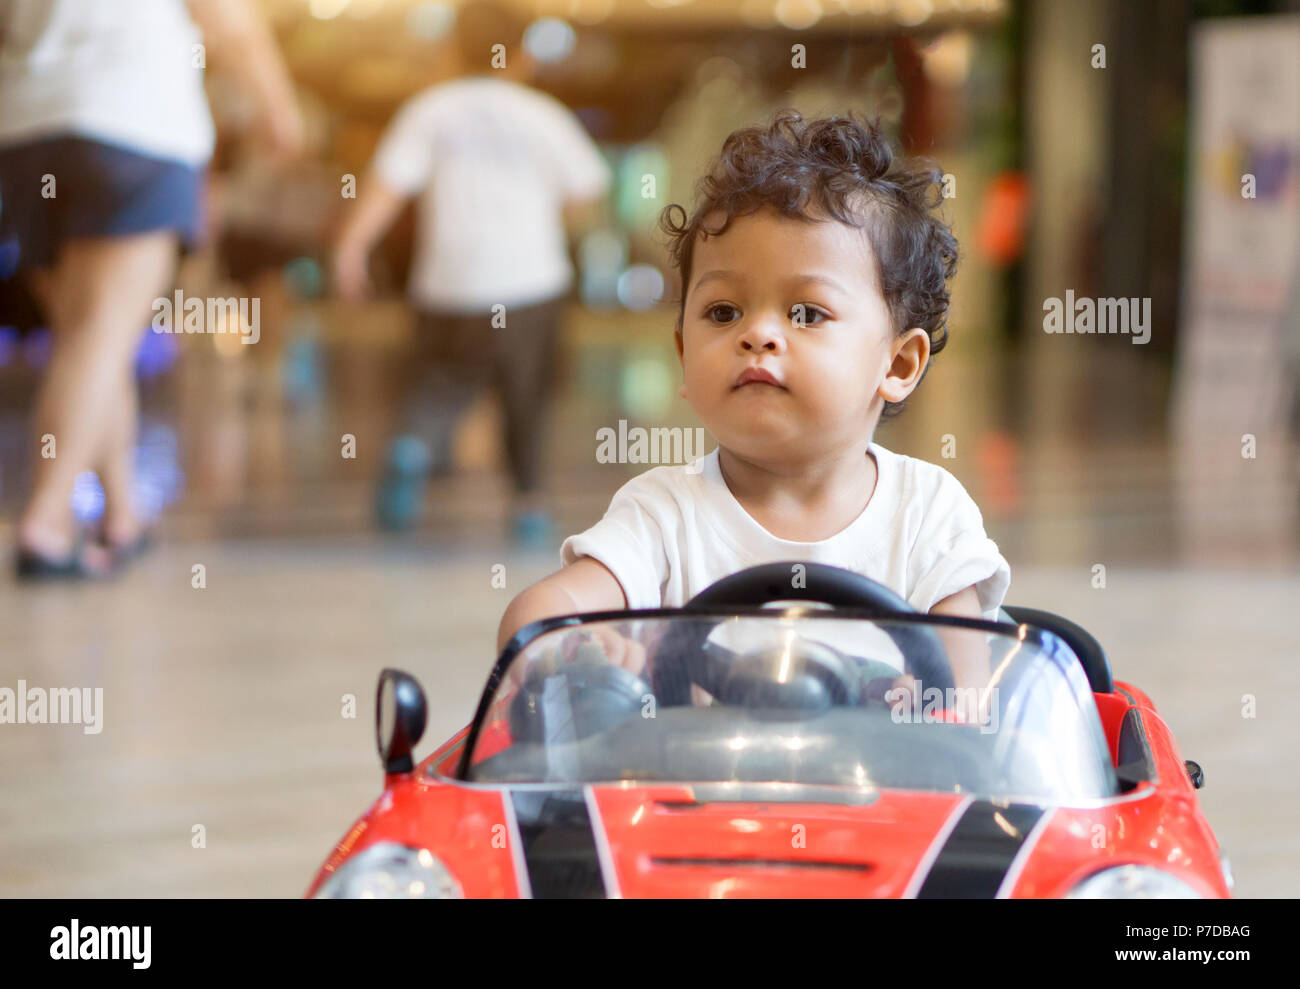 Asian Baby Boy Driving In A Red Car Toy Stock Photo 211121304 Alamy